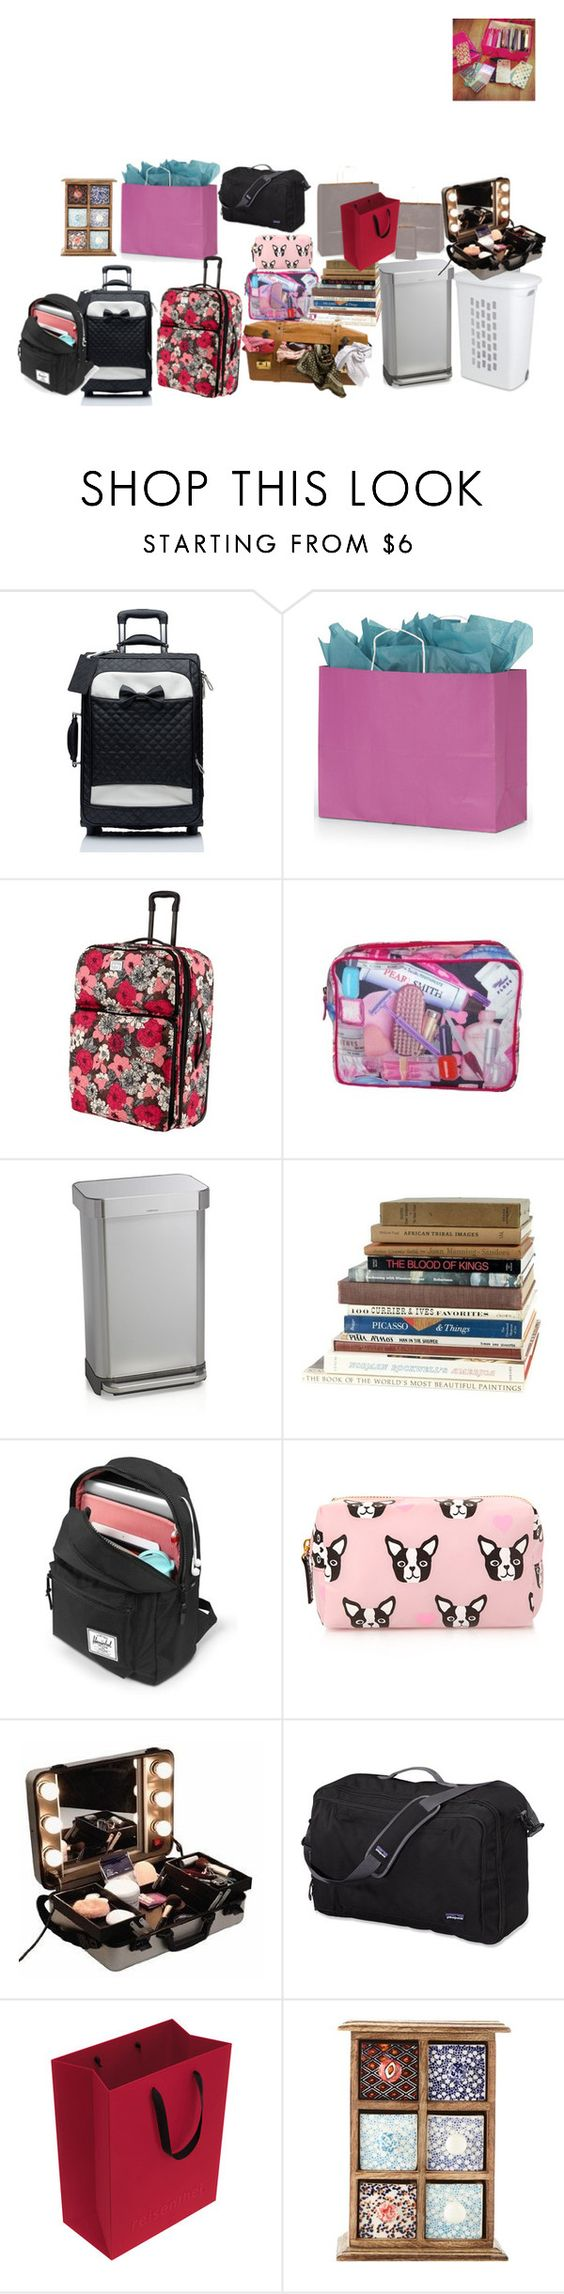 """Sem título #81"" by renatareeh on Polyvore featuring beleza, Forever New, Sterilite, Vera Bradley, Paul Smith, Crate and Barrel, Forever 21, CO, Patagonia e Reisenthel"